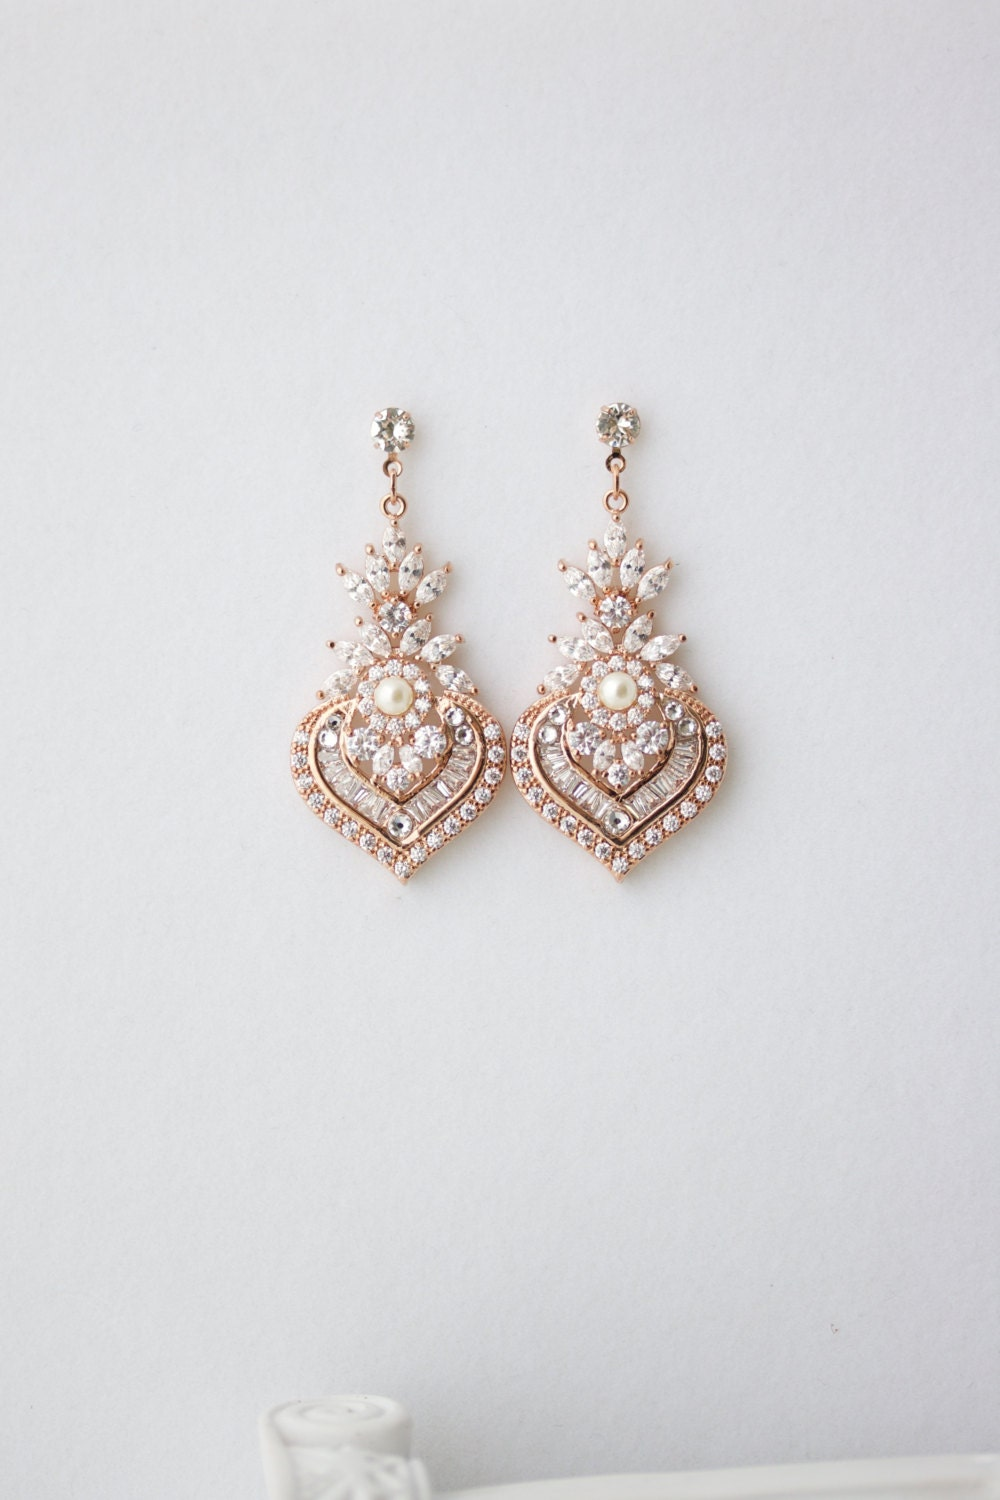 Rose Gold Earrings Bridal Earrings Rose Gold Crystal Earrings